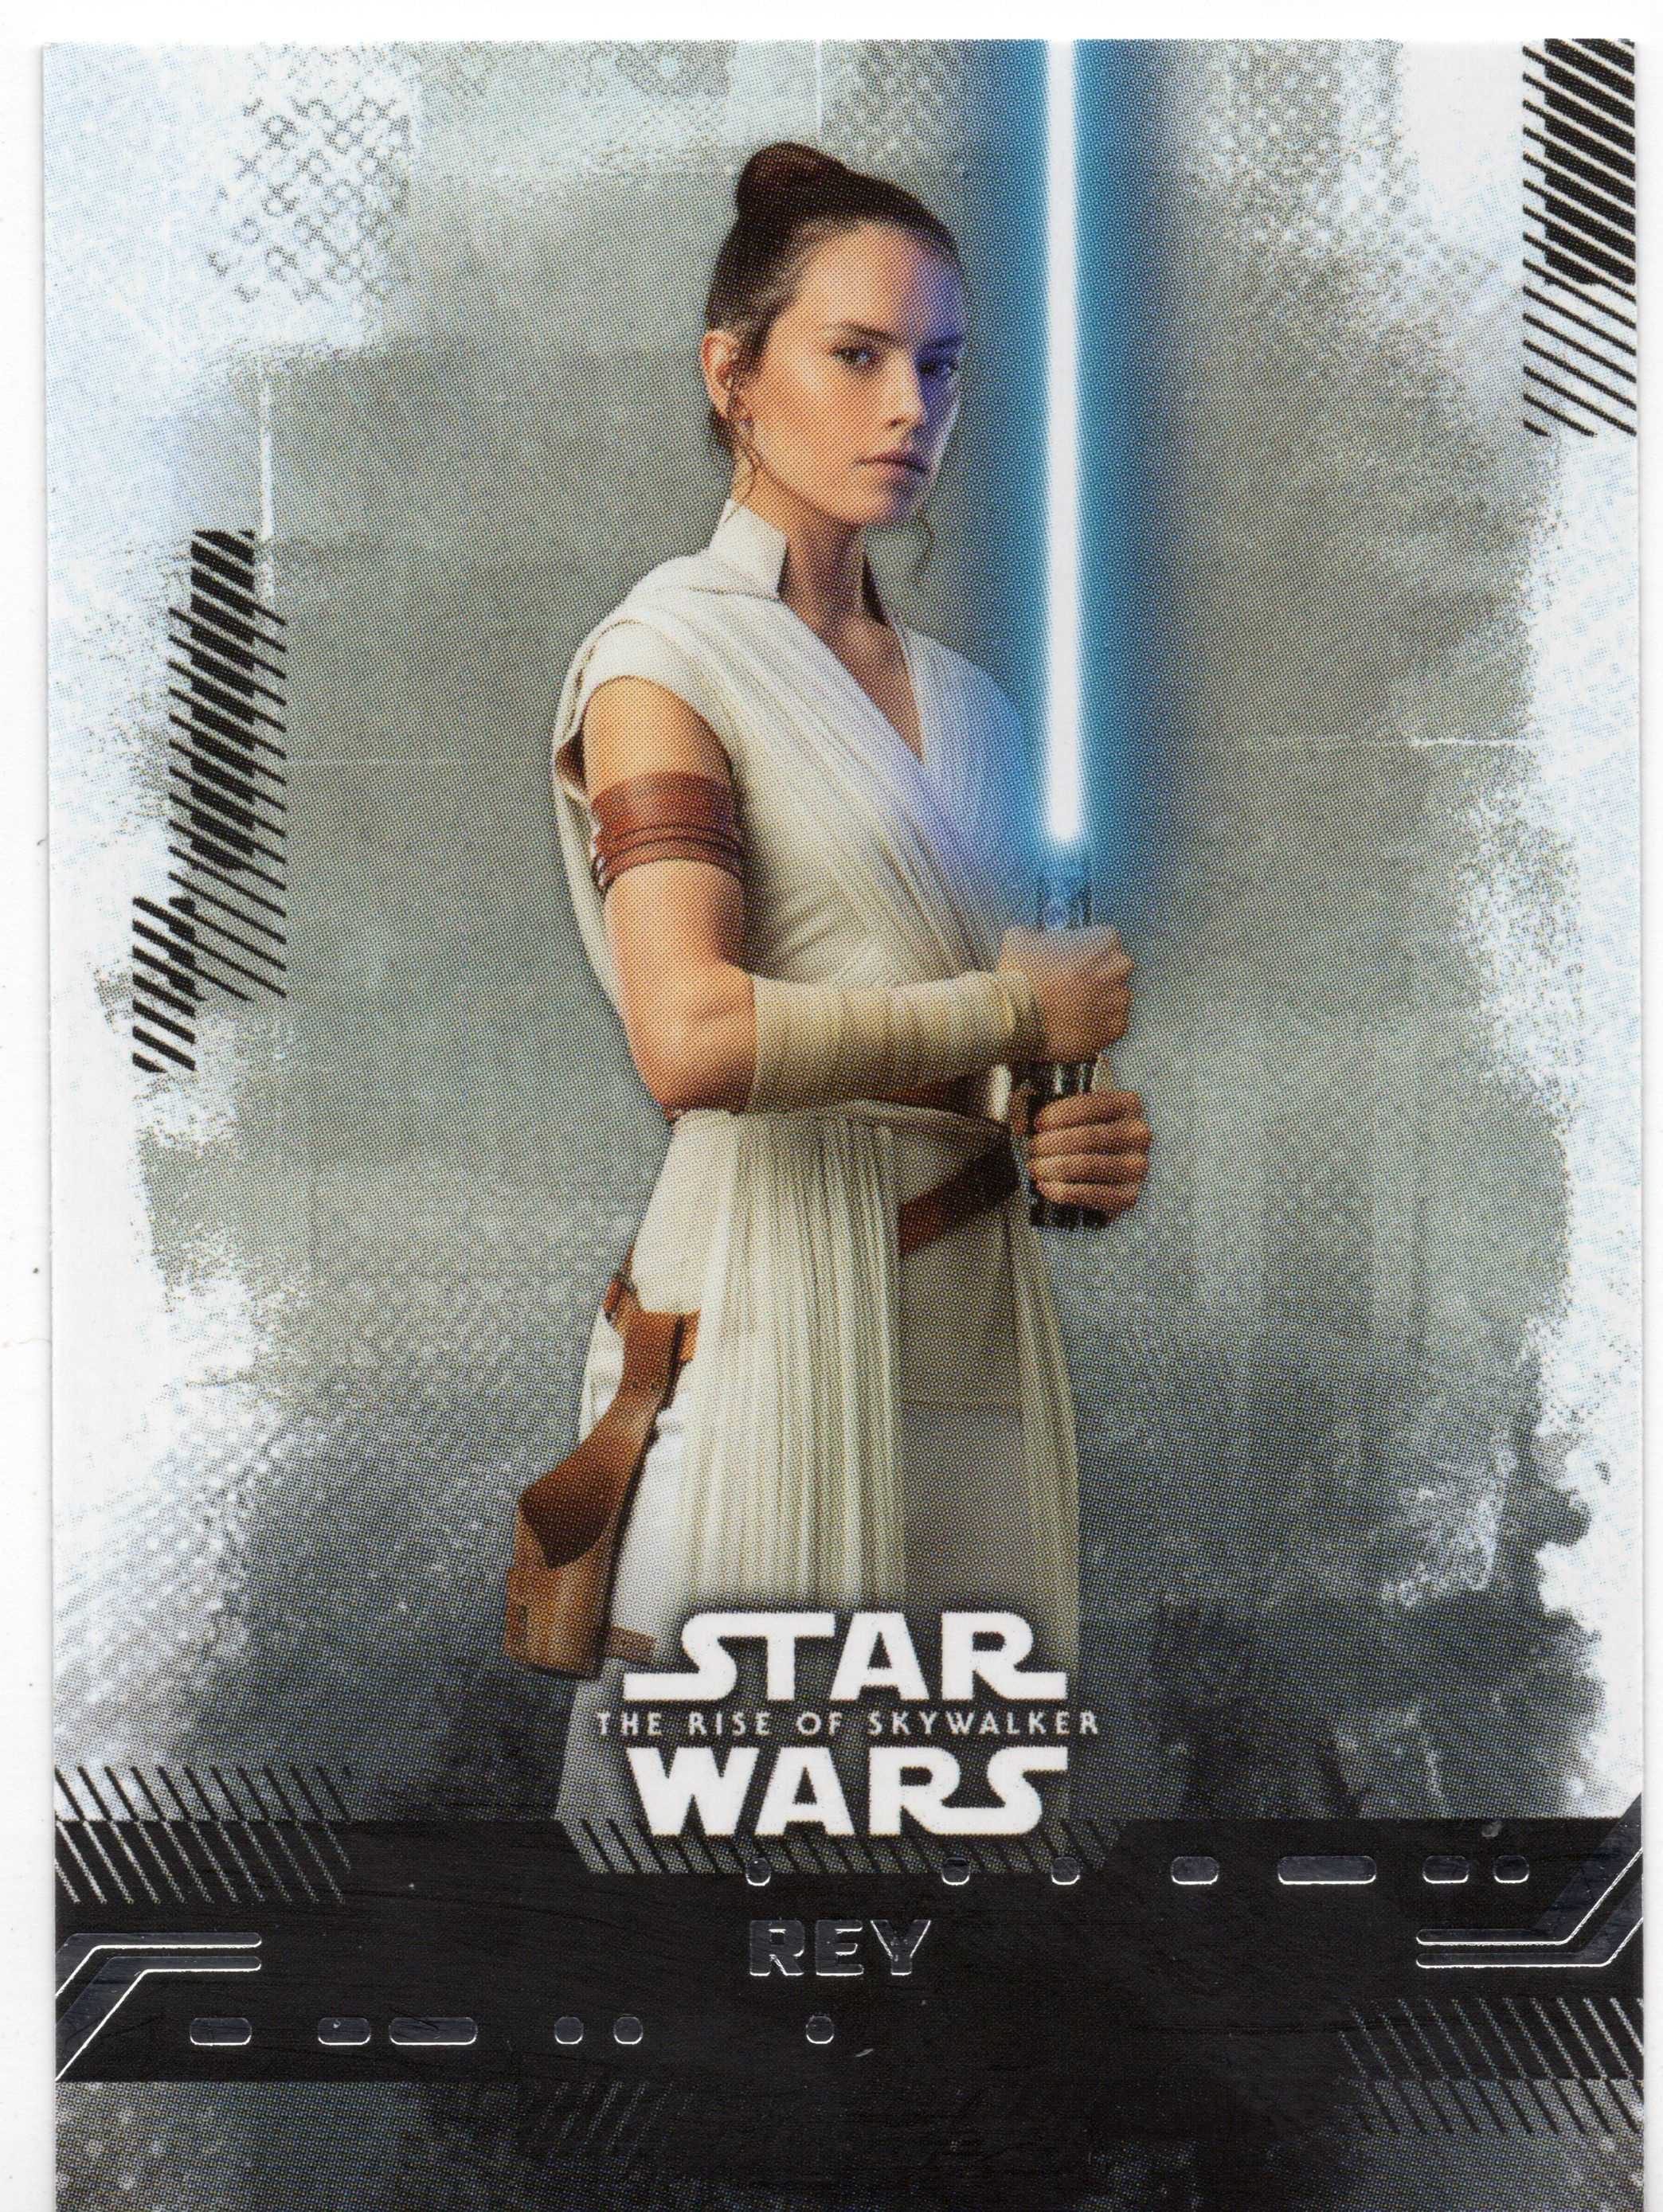 For Sale 2019 Topps Star Wars The Rise Of Skywalker Rey 1 Sw28 Webstore In 2020 Star Wars Star Wars Luke Skywalker Rey Star Wars